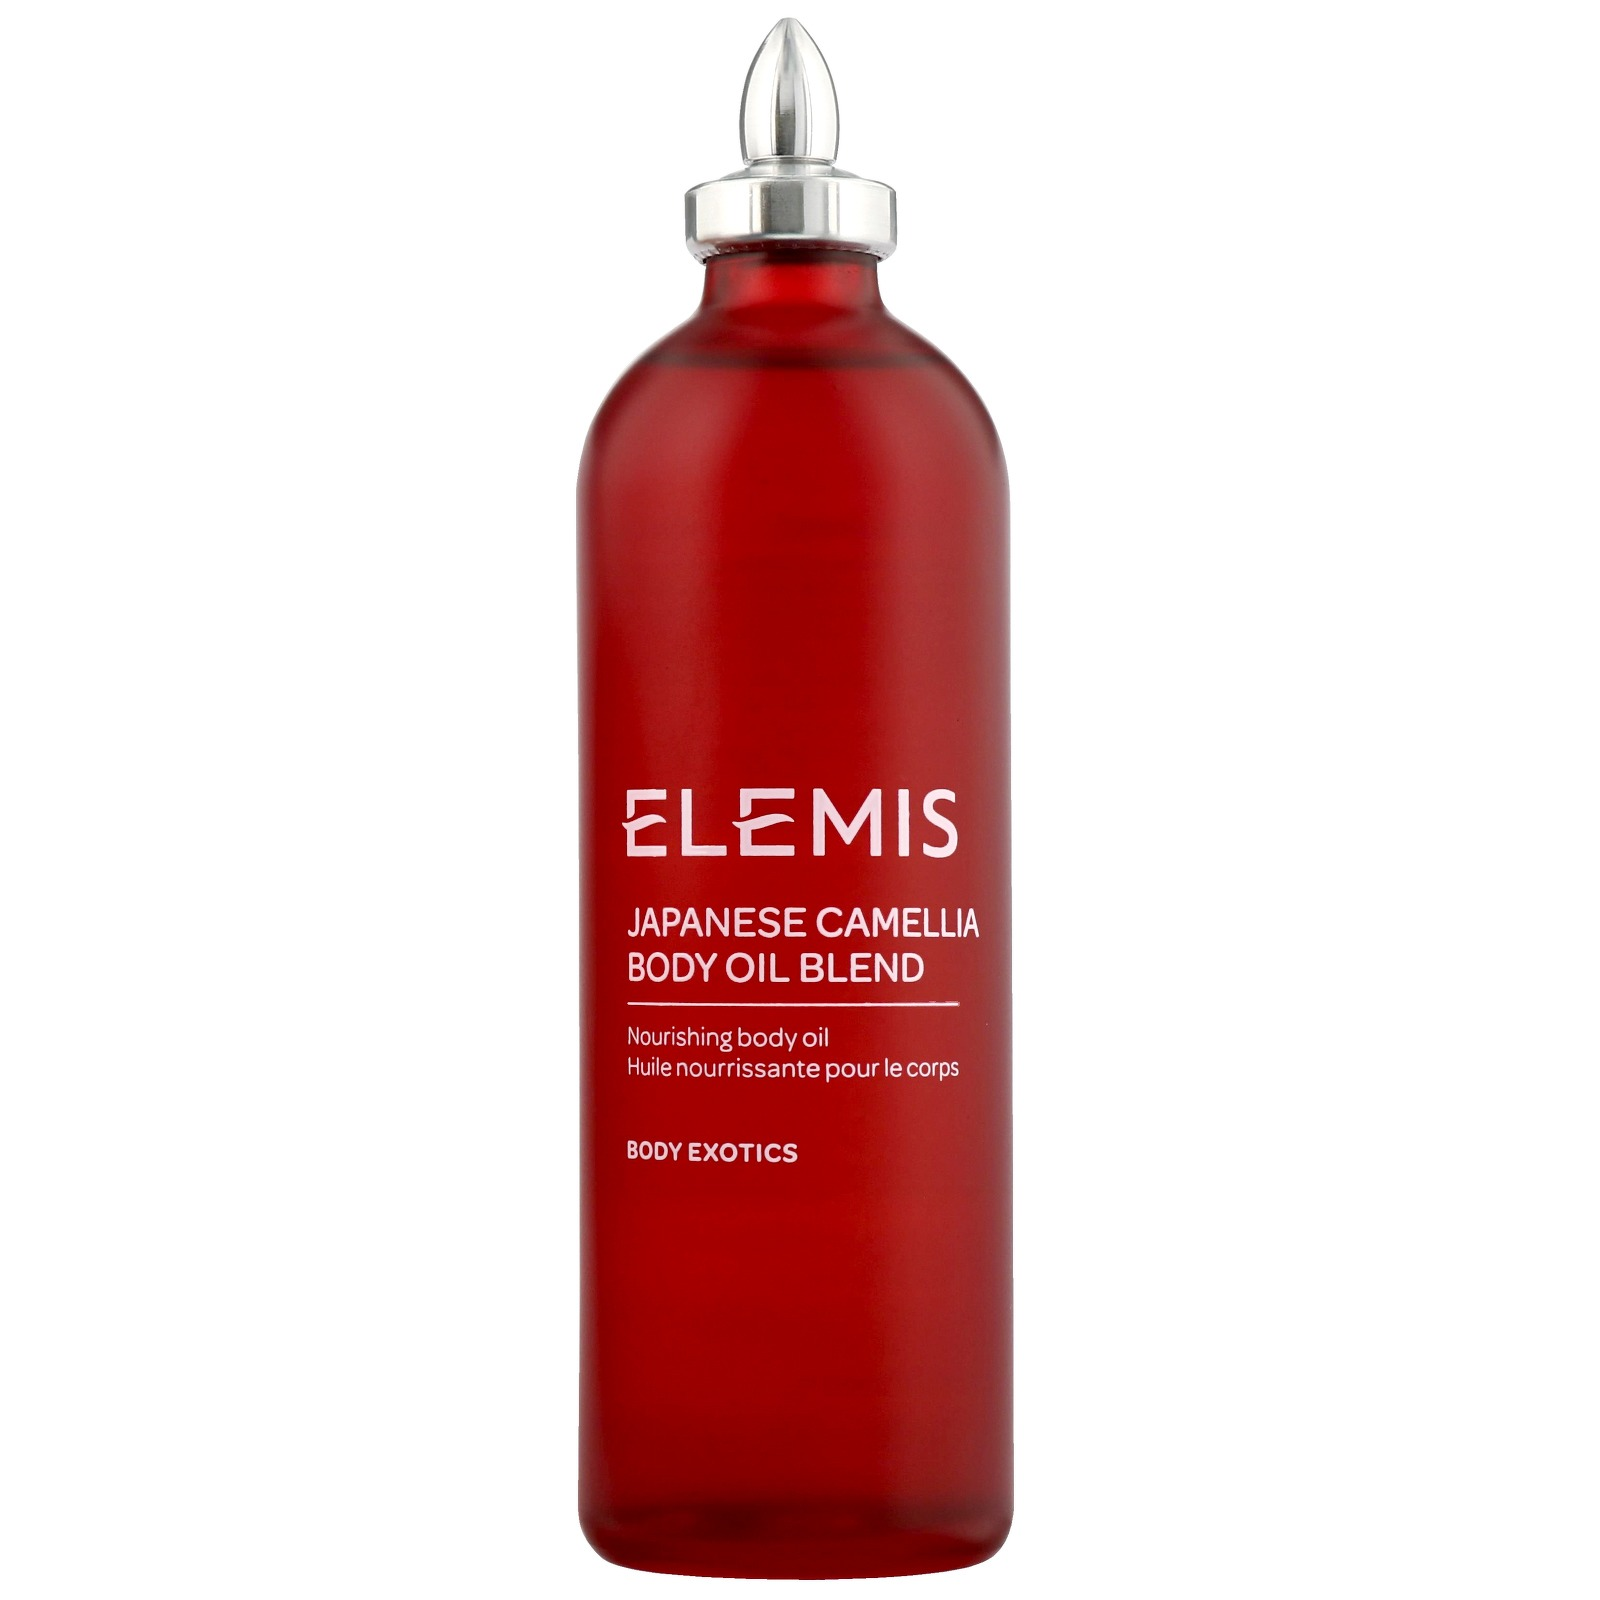 Elemis Body Exotics Japanese Camellia Body Oil Blend 100ml / 3.3 fl.oz.